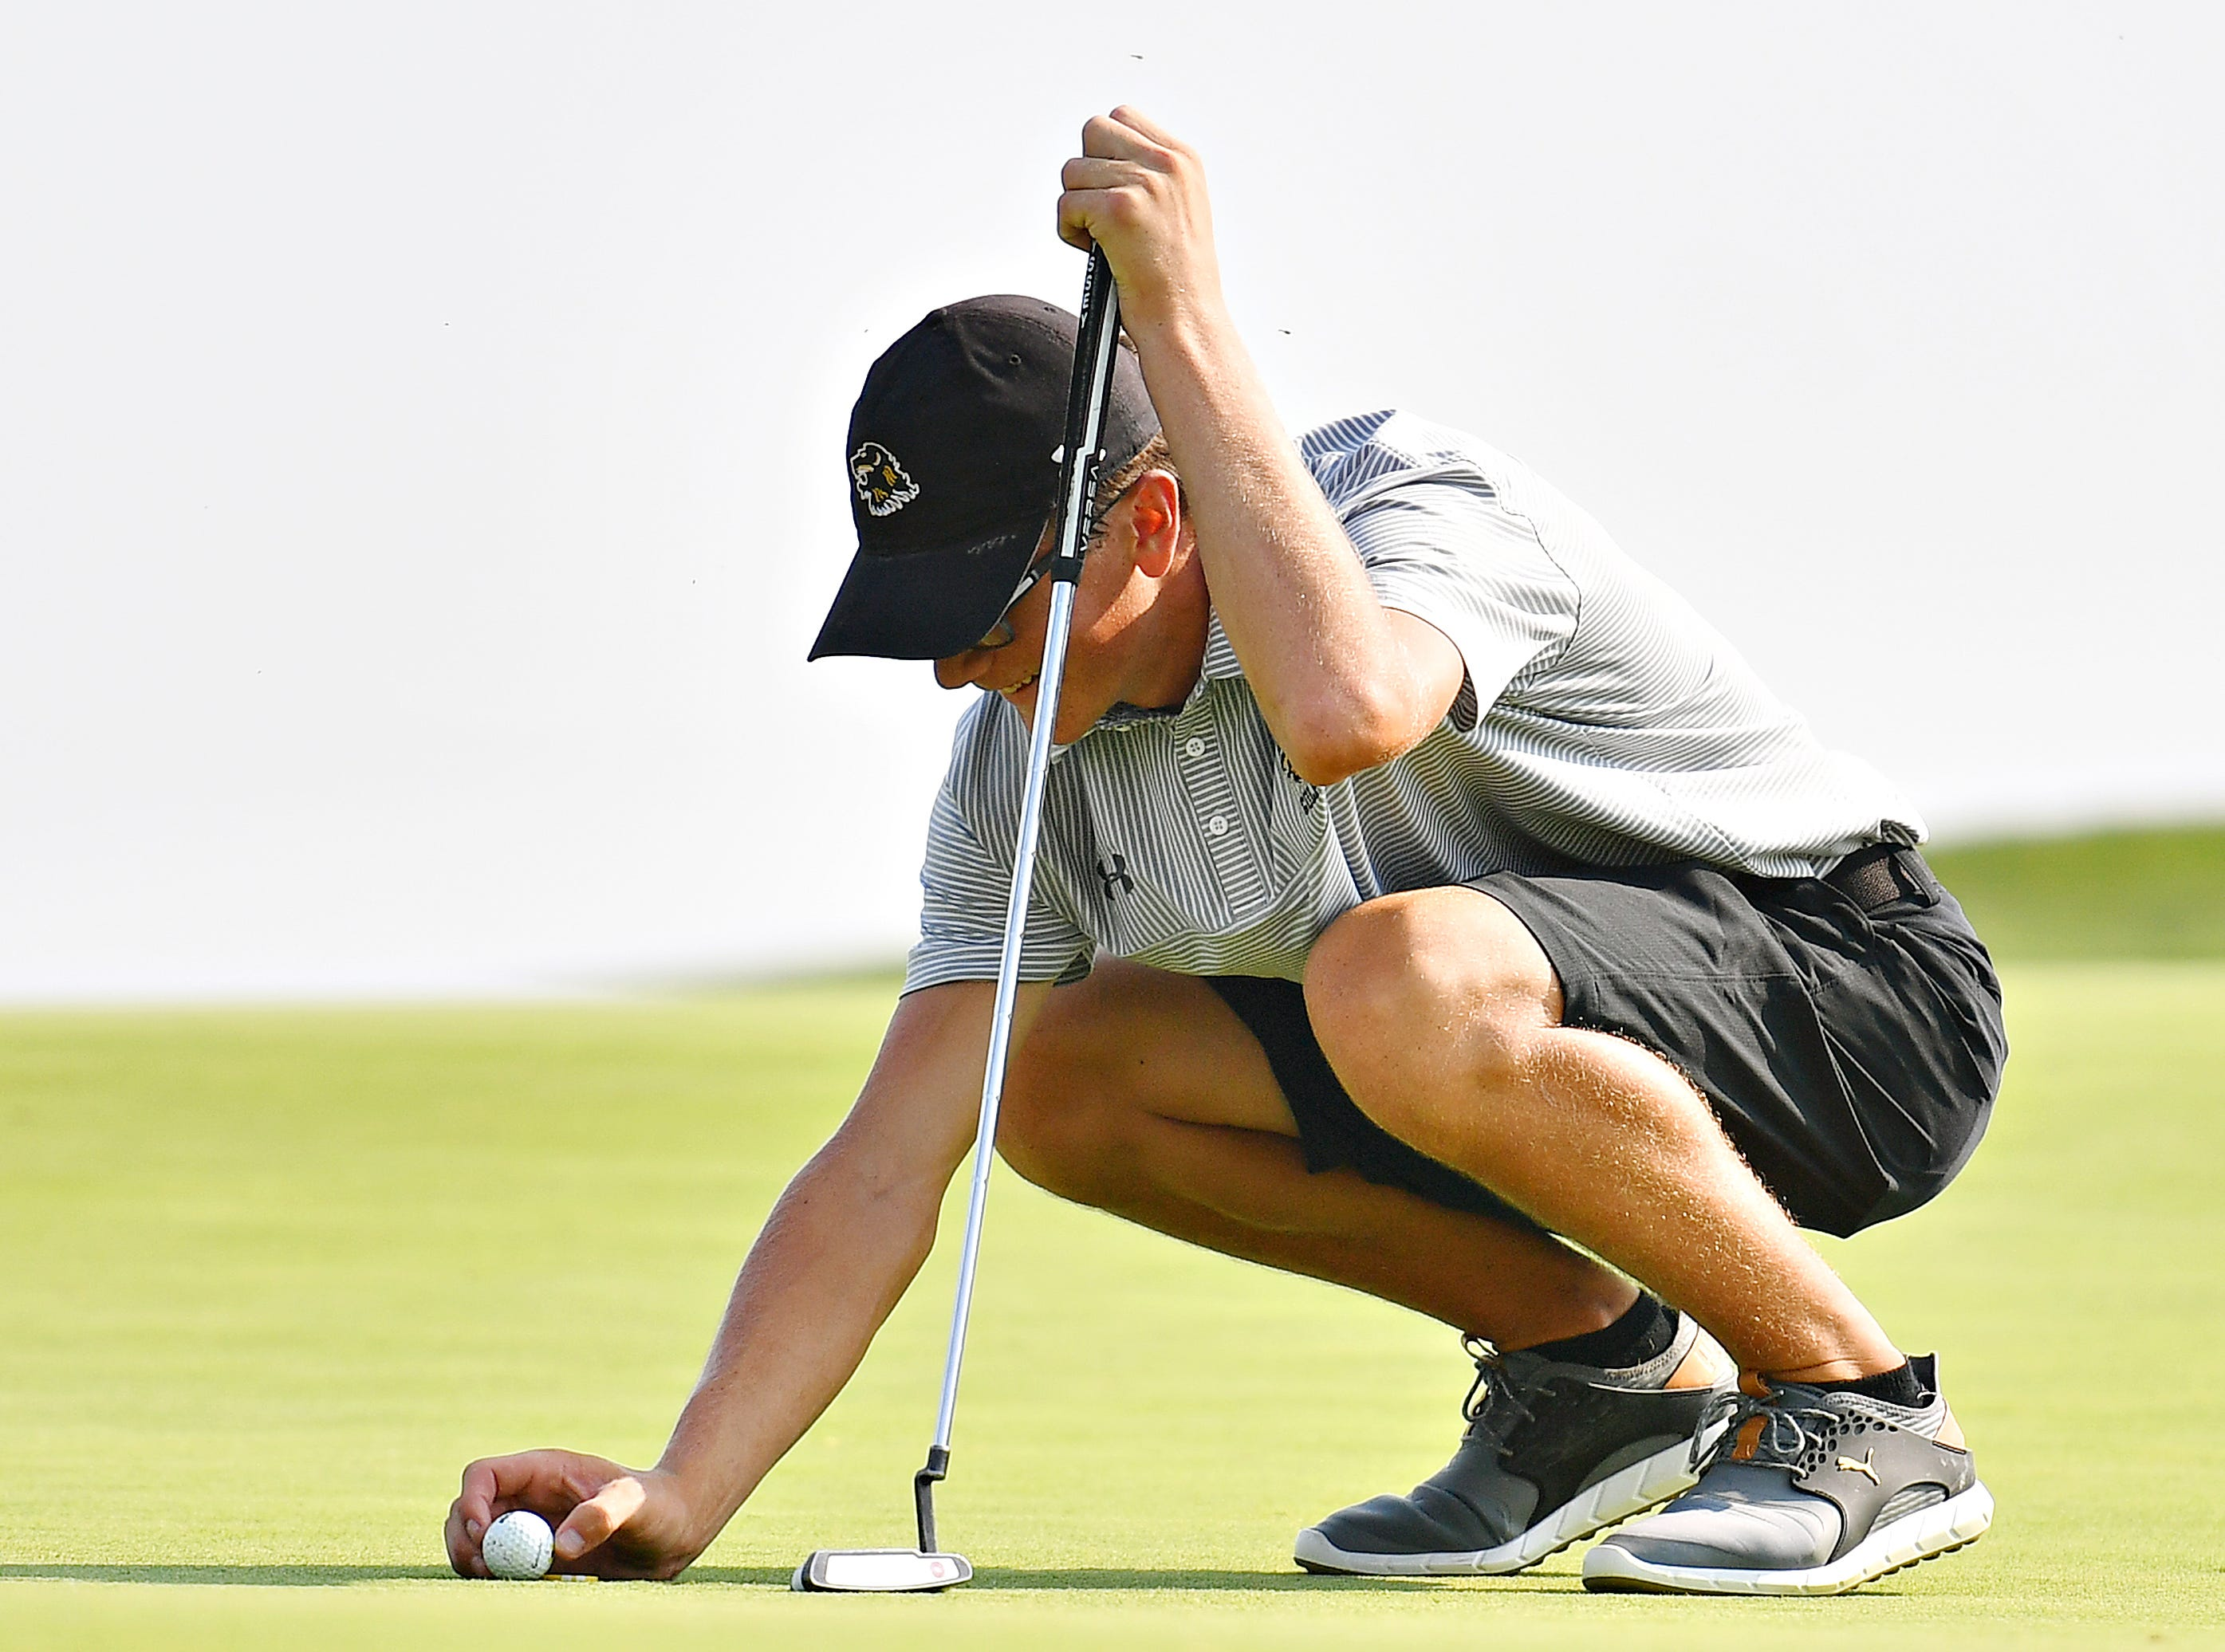 Red Lion's Channing Bratton lines up his shot on the green at hole three during York-Adams League Division I golf action at Royal Manchester Golf Links in East Manchester Township, Thursday, Aug. 16, 2018. Dawn J. Sagert